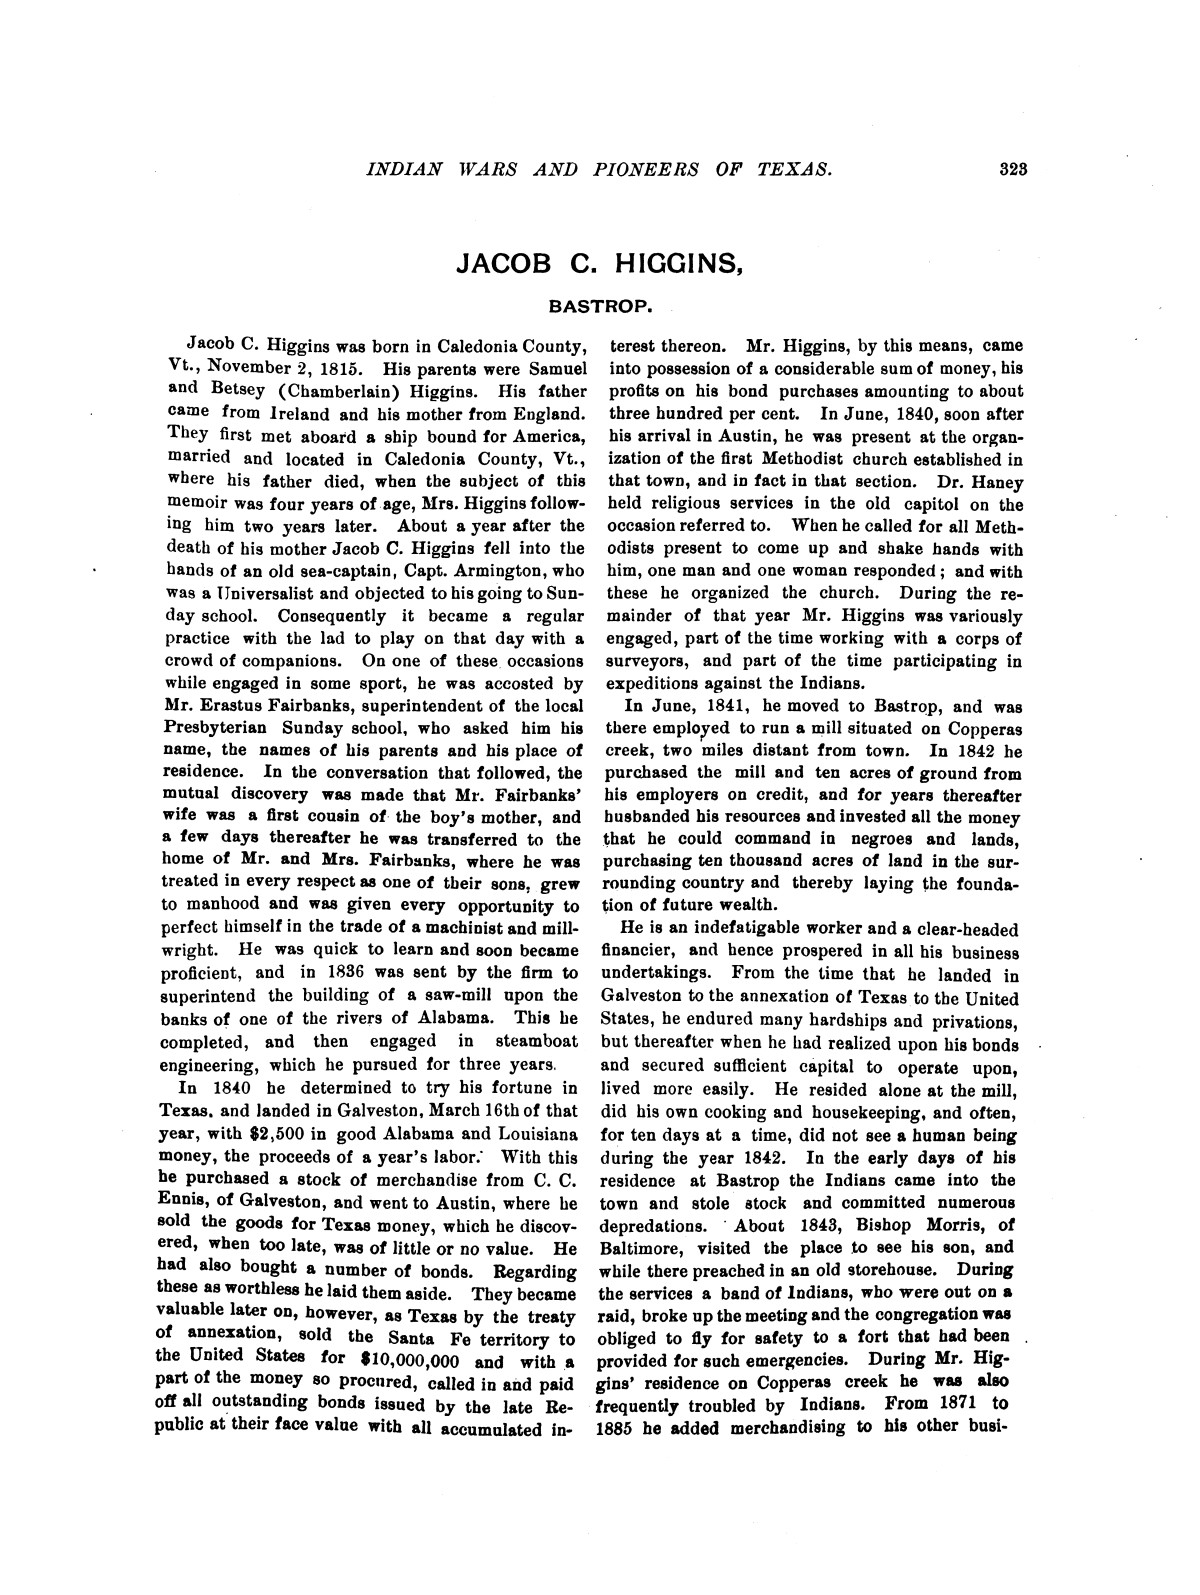 Indian wars and pioneers of Texas / by John Henry Brown.                                                                                                      [Sequence #]: 383 of 894